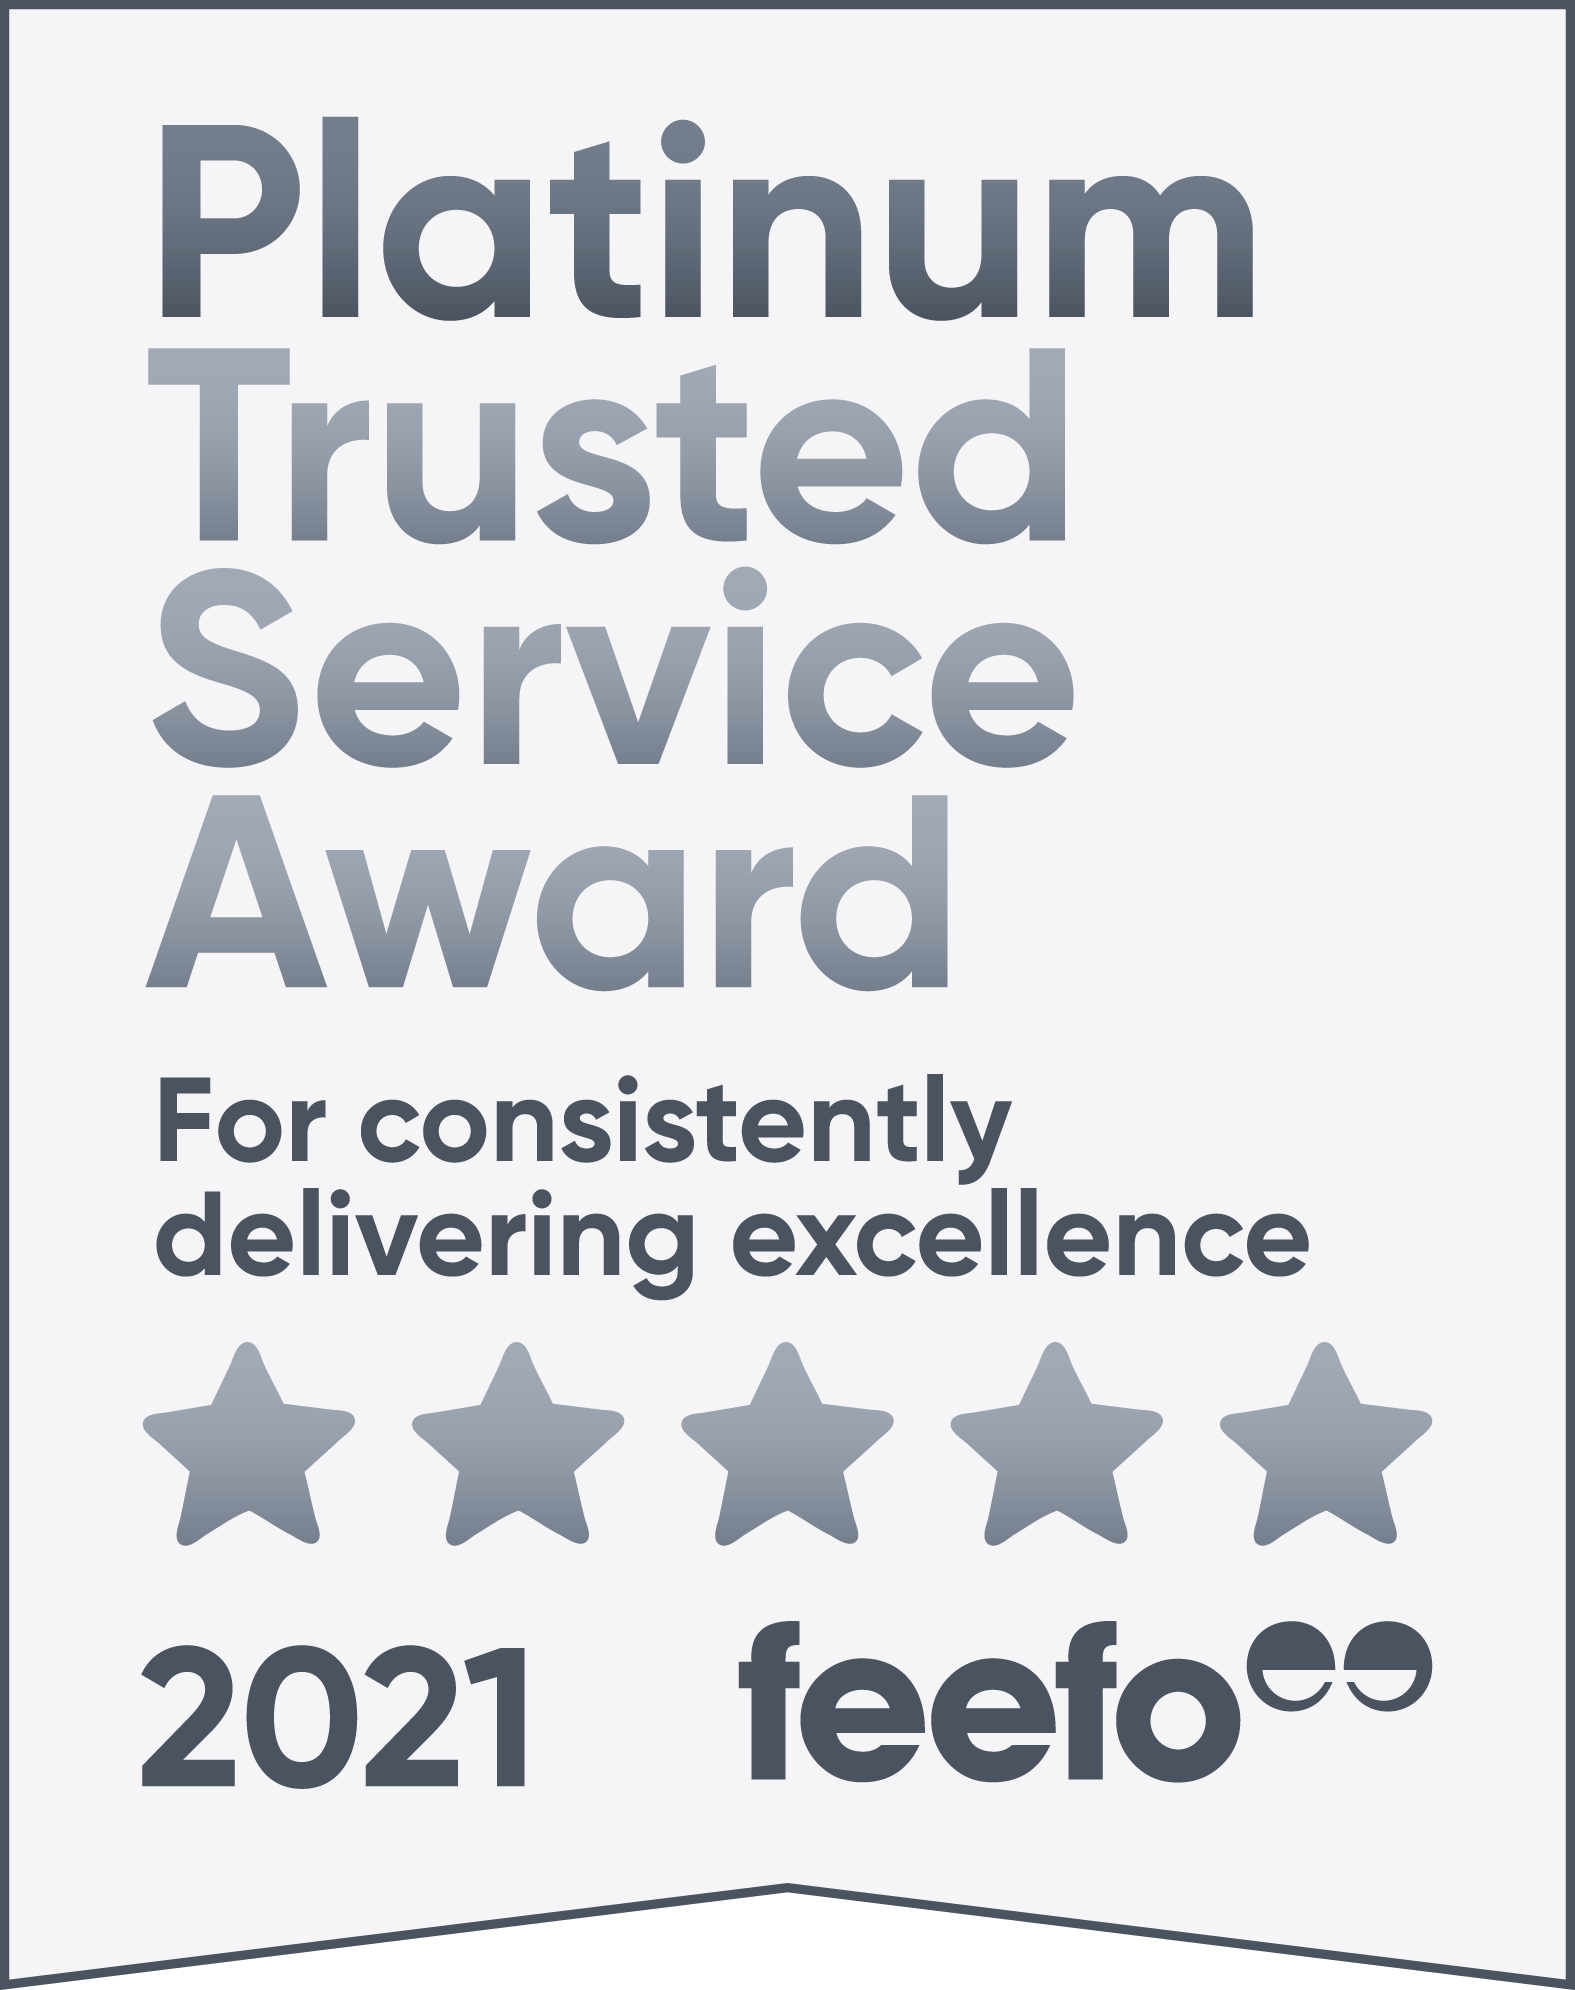 Feefo Plainum Trusted Service 2021 Award logo